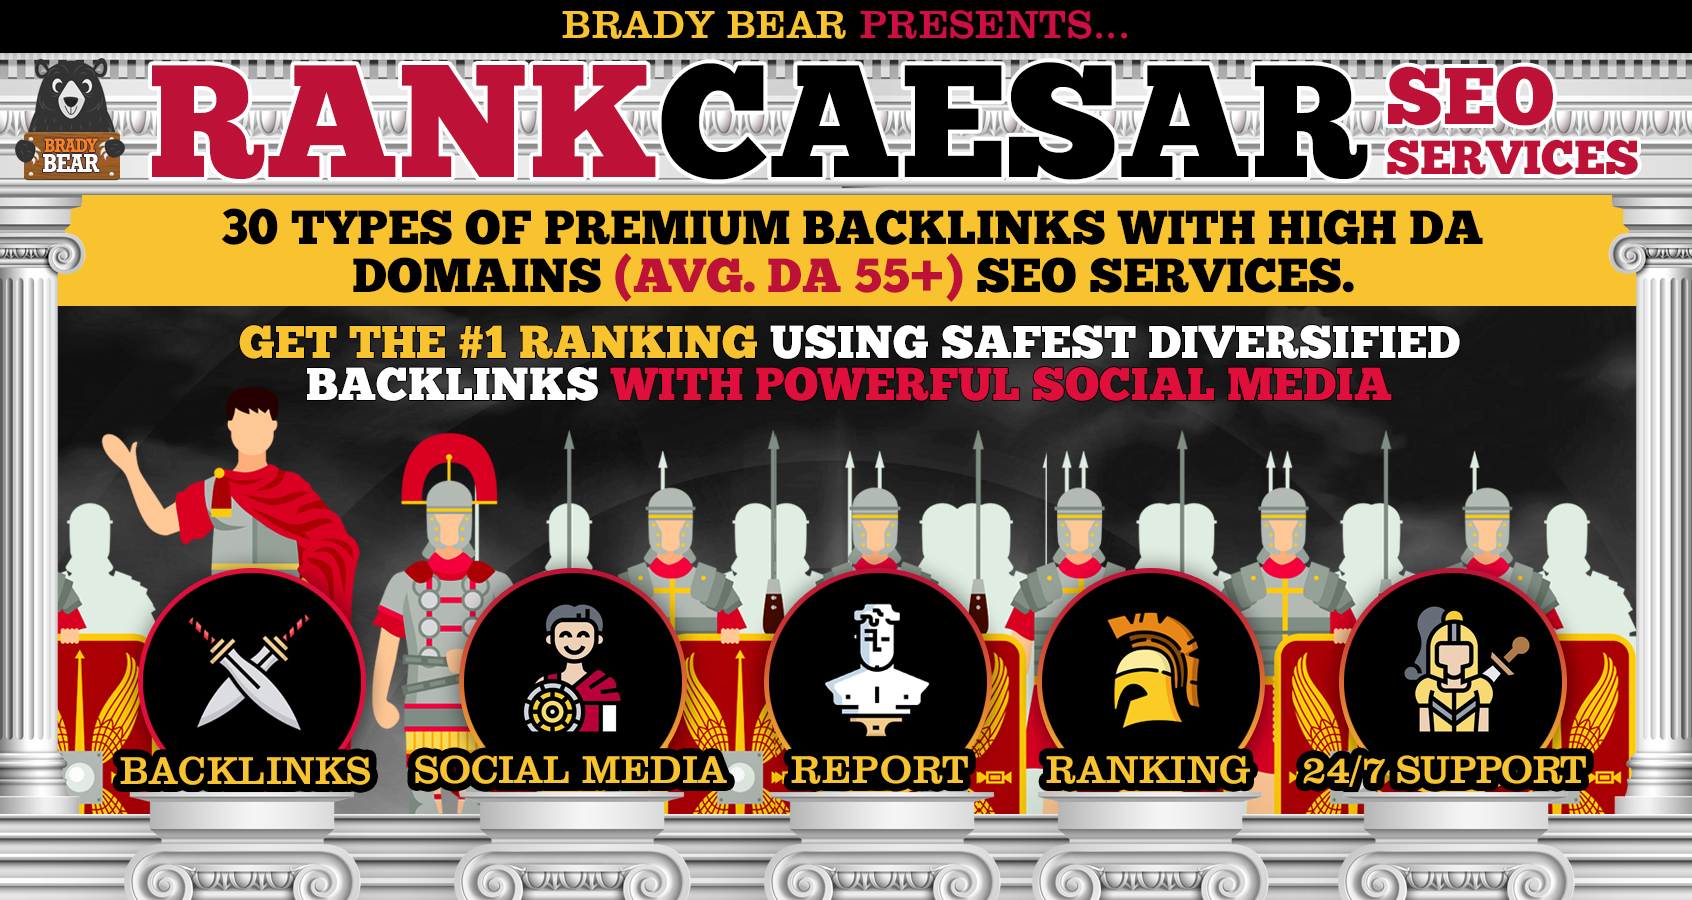 BLACK FRIDAY SALE ON RANK CAESAR 3.0 - Premium SEO backlinks for 2020 GOOGLE PAGE 1 RANKING